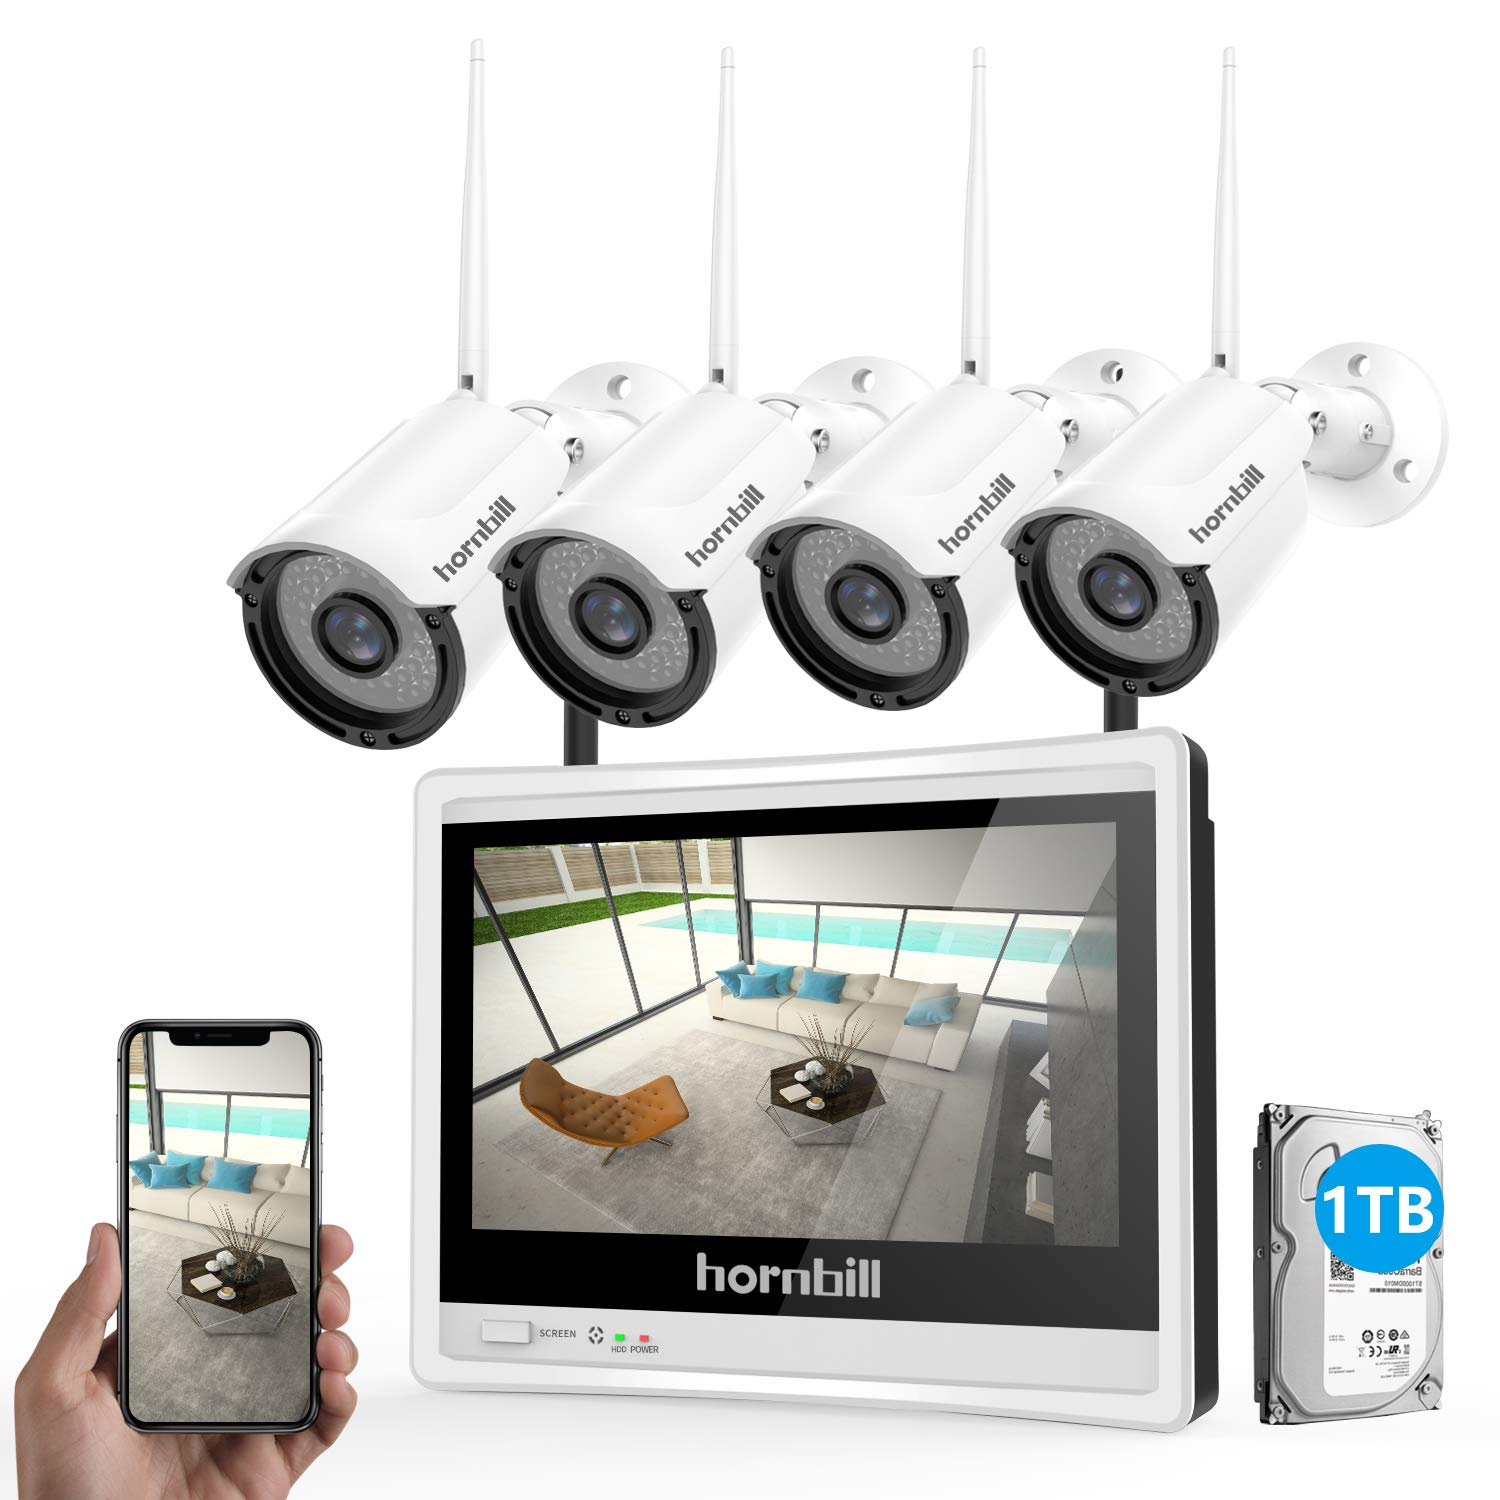 Wireless Security Camera System with Monitor,Hornbill 1080P 8 Channel Video Security System with 12 Inch Monitor,1TB Hard Drive,4PCS 1.3MP Indoor Outdoor IP Security Camera with Night Vision Free APP by hornbill